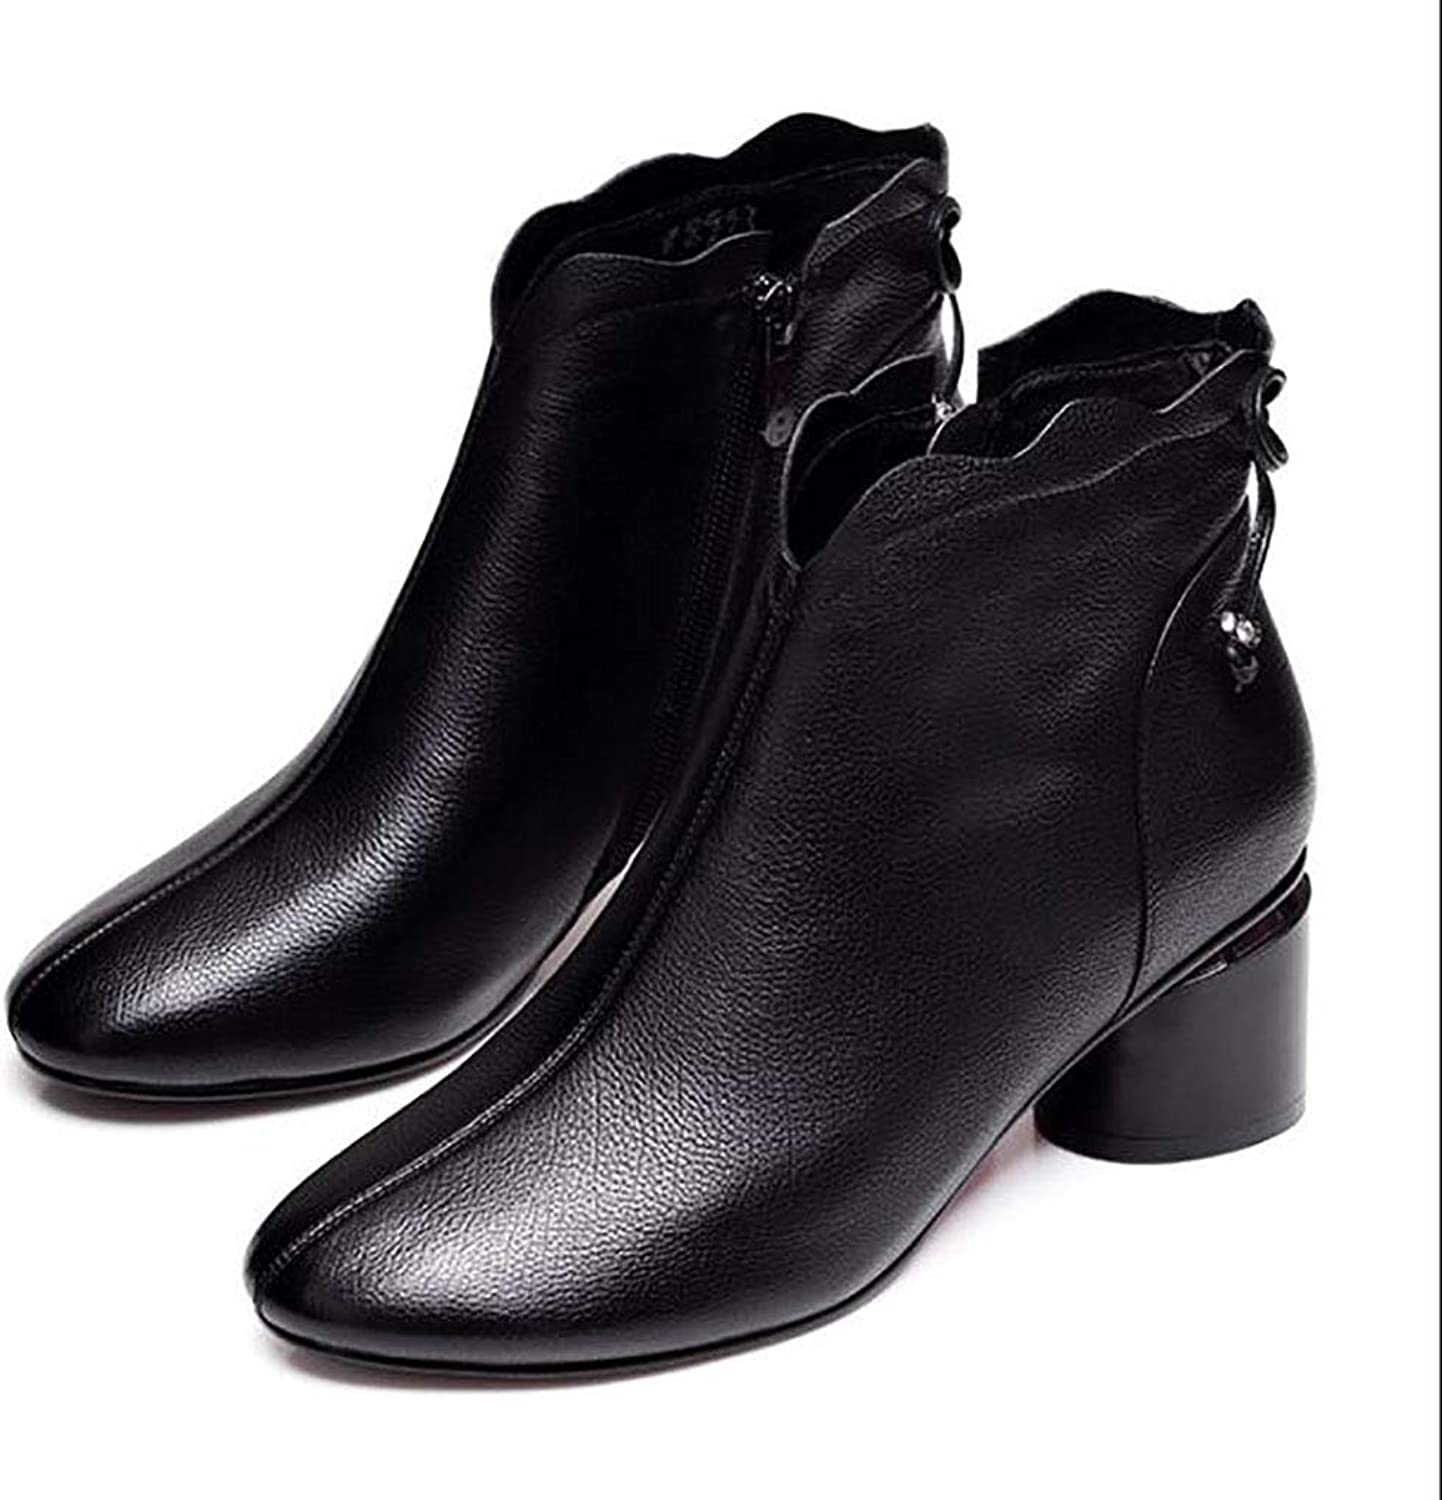 Women's shoes Winter Round Head Thick Heel Boots Women's Martin Boots mid Heel shoes Single Boots (color   Black, Size   39)